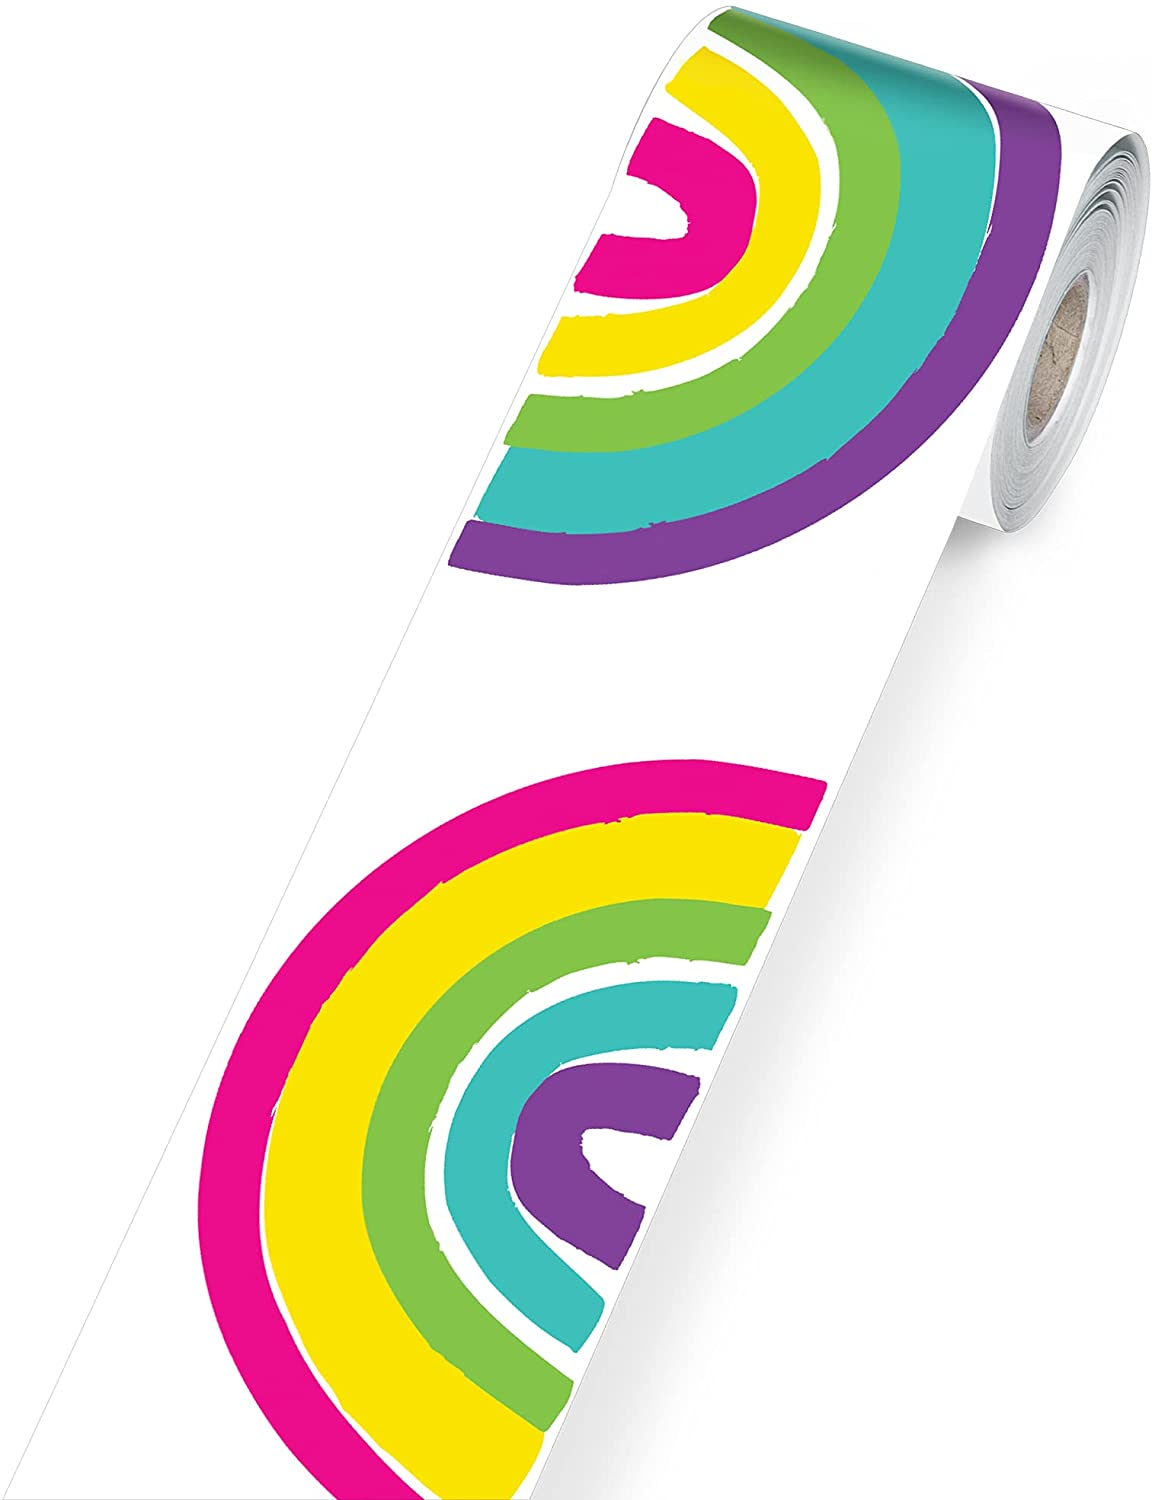 Carson Dellosa Kind Vibes Rolled Rainbow Border—Rolled Border With Colorful Rainbows for Bulletin Boards, Desks, Lockers, Homeschool or Classroom Decor (36 ft)